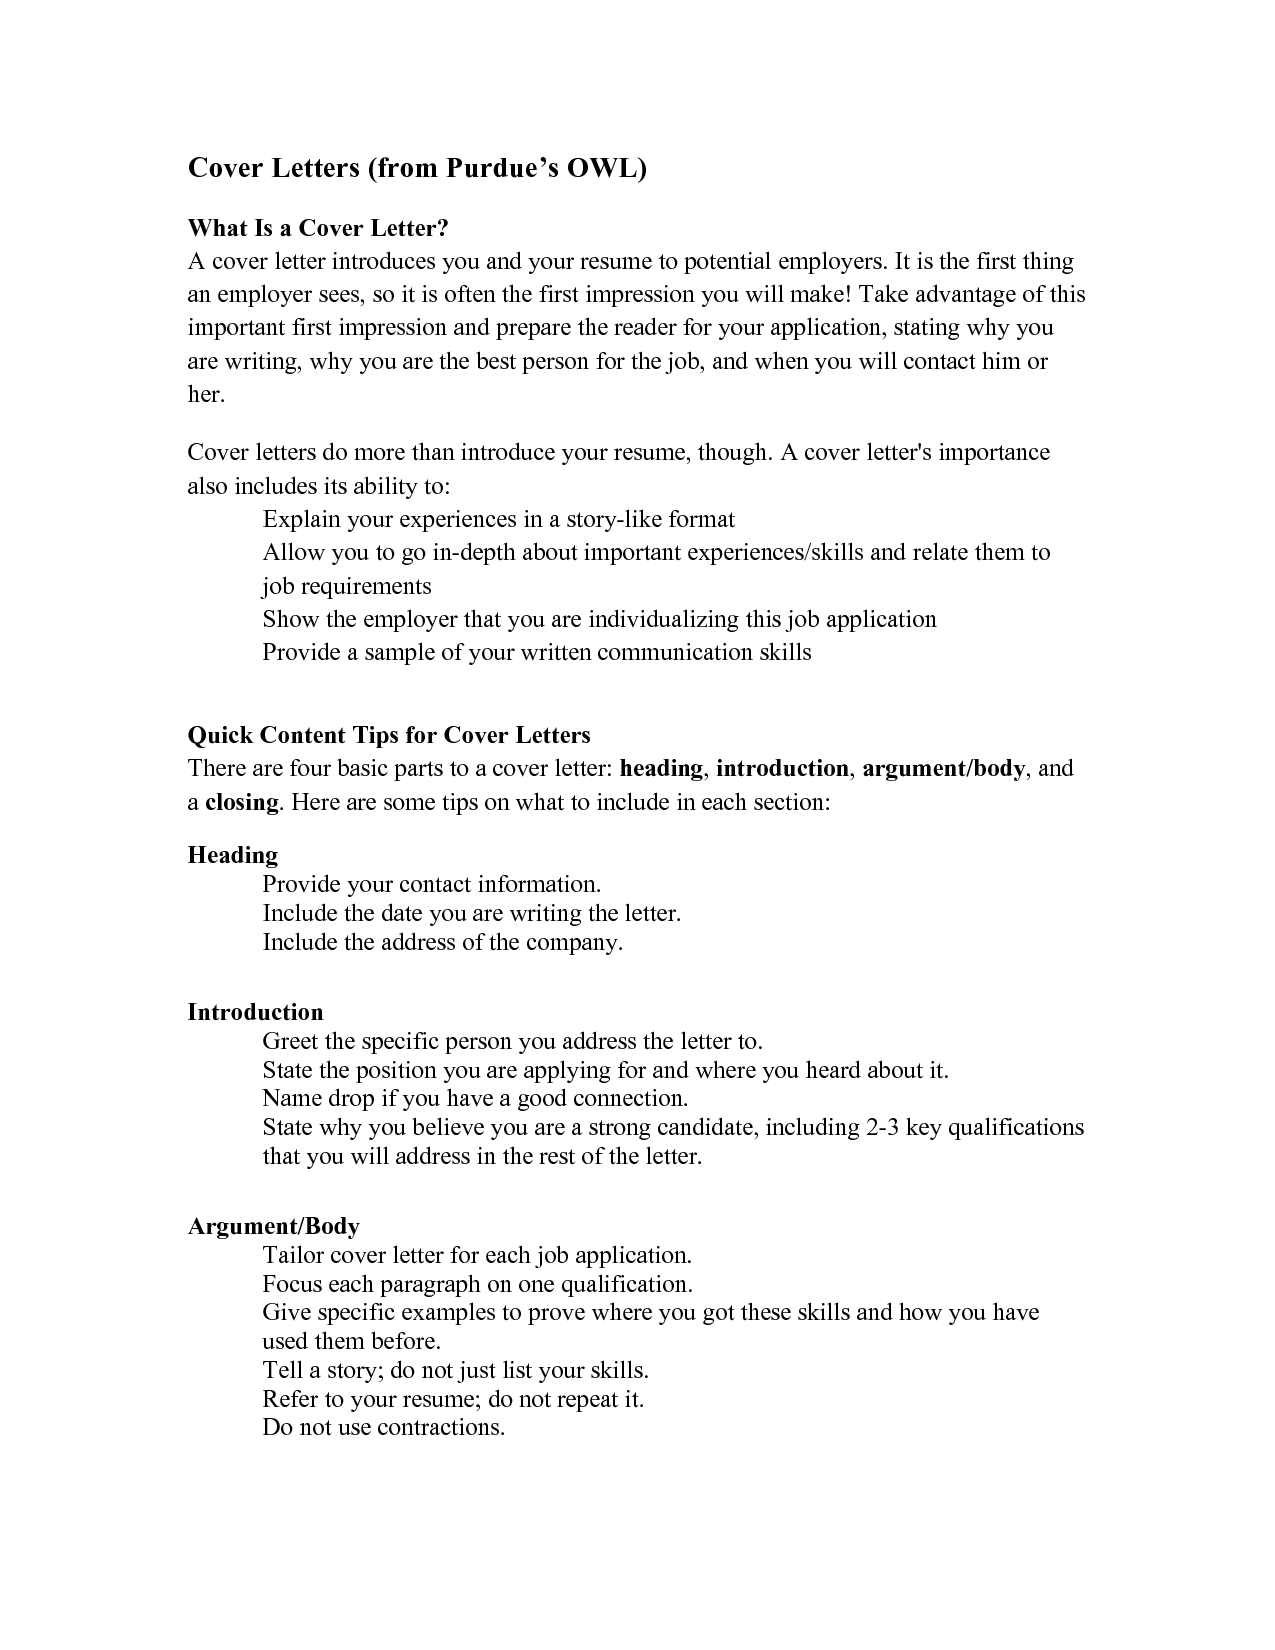 Best 25 cover letter outline ideas on pinterest resume outline best 25 cover letter outline ideas on pinterest resume outline application cover letter and cover letter builder madrichimfo Image collections